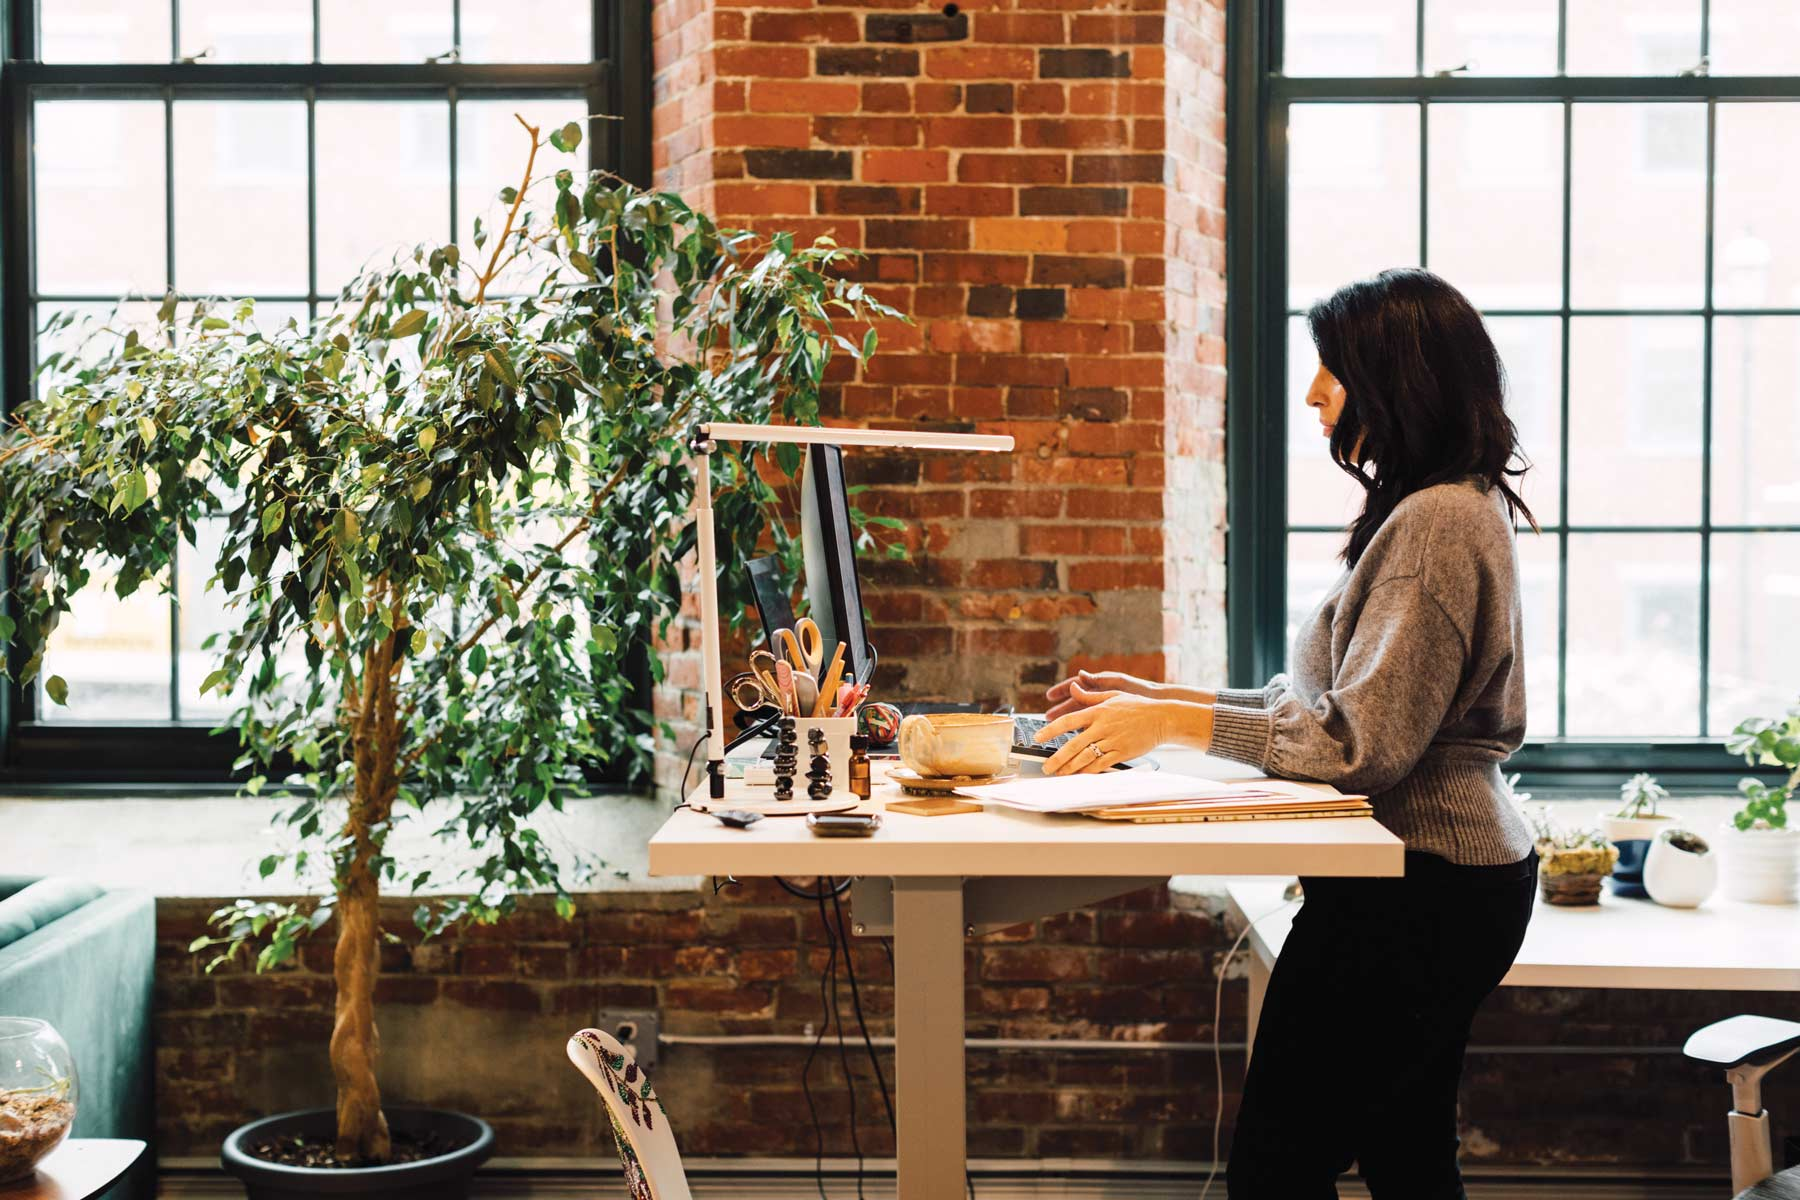 Zoulamis, at her desk, which enjoys a view and the company of many plants.